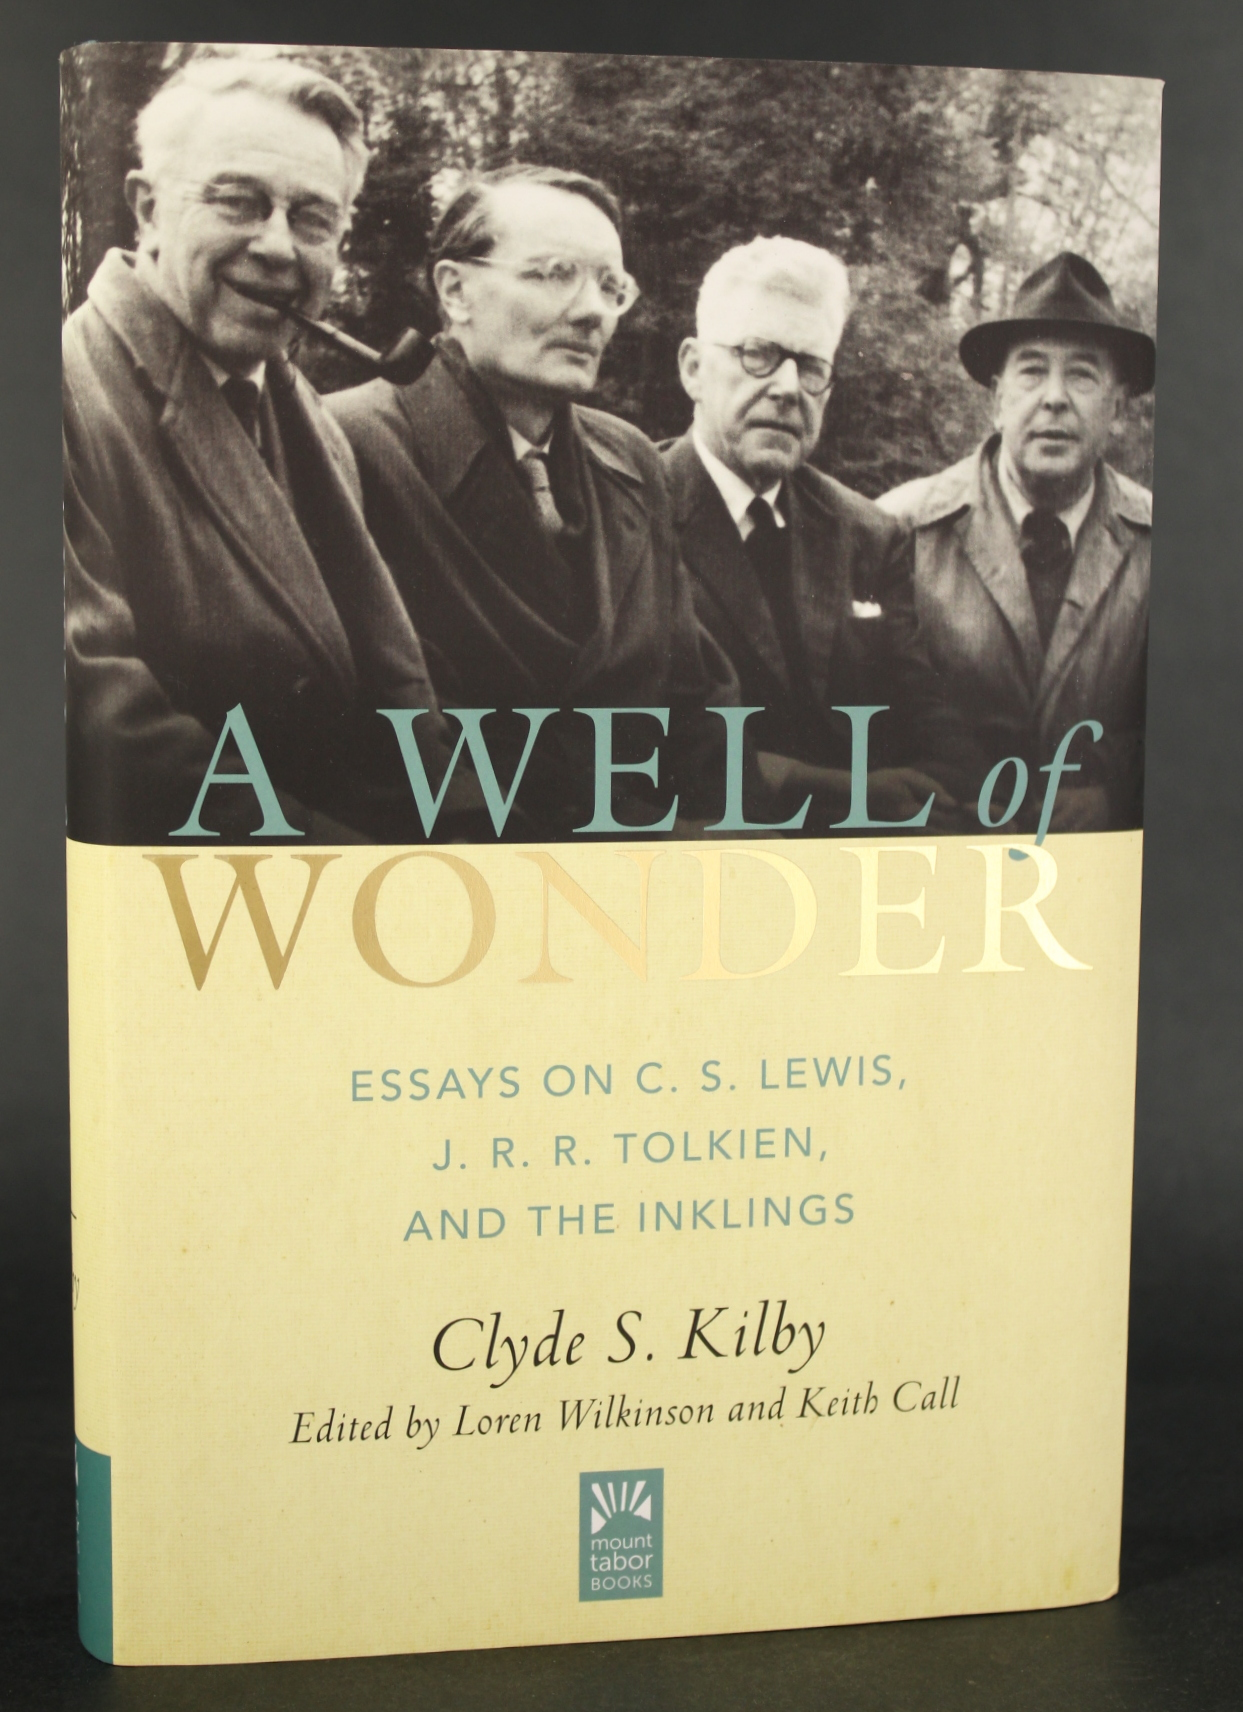 Image for A Well of Wonder: C. S. Lewis, J. R. R. Tolkien, and The Inklings (Mount Tabor Books)